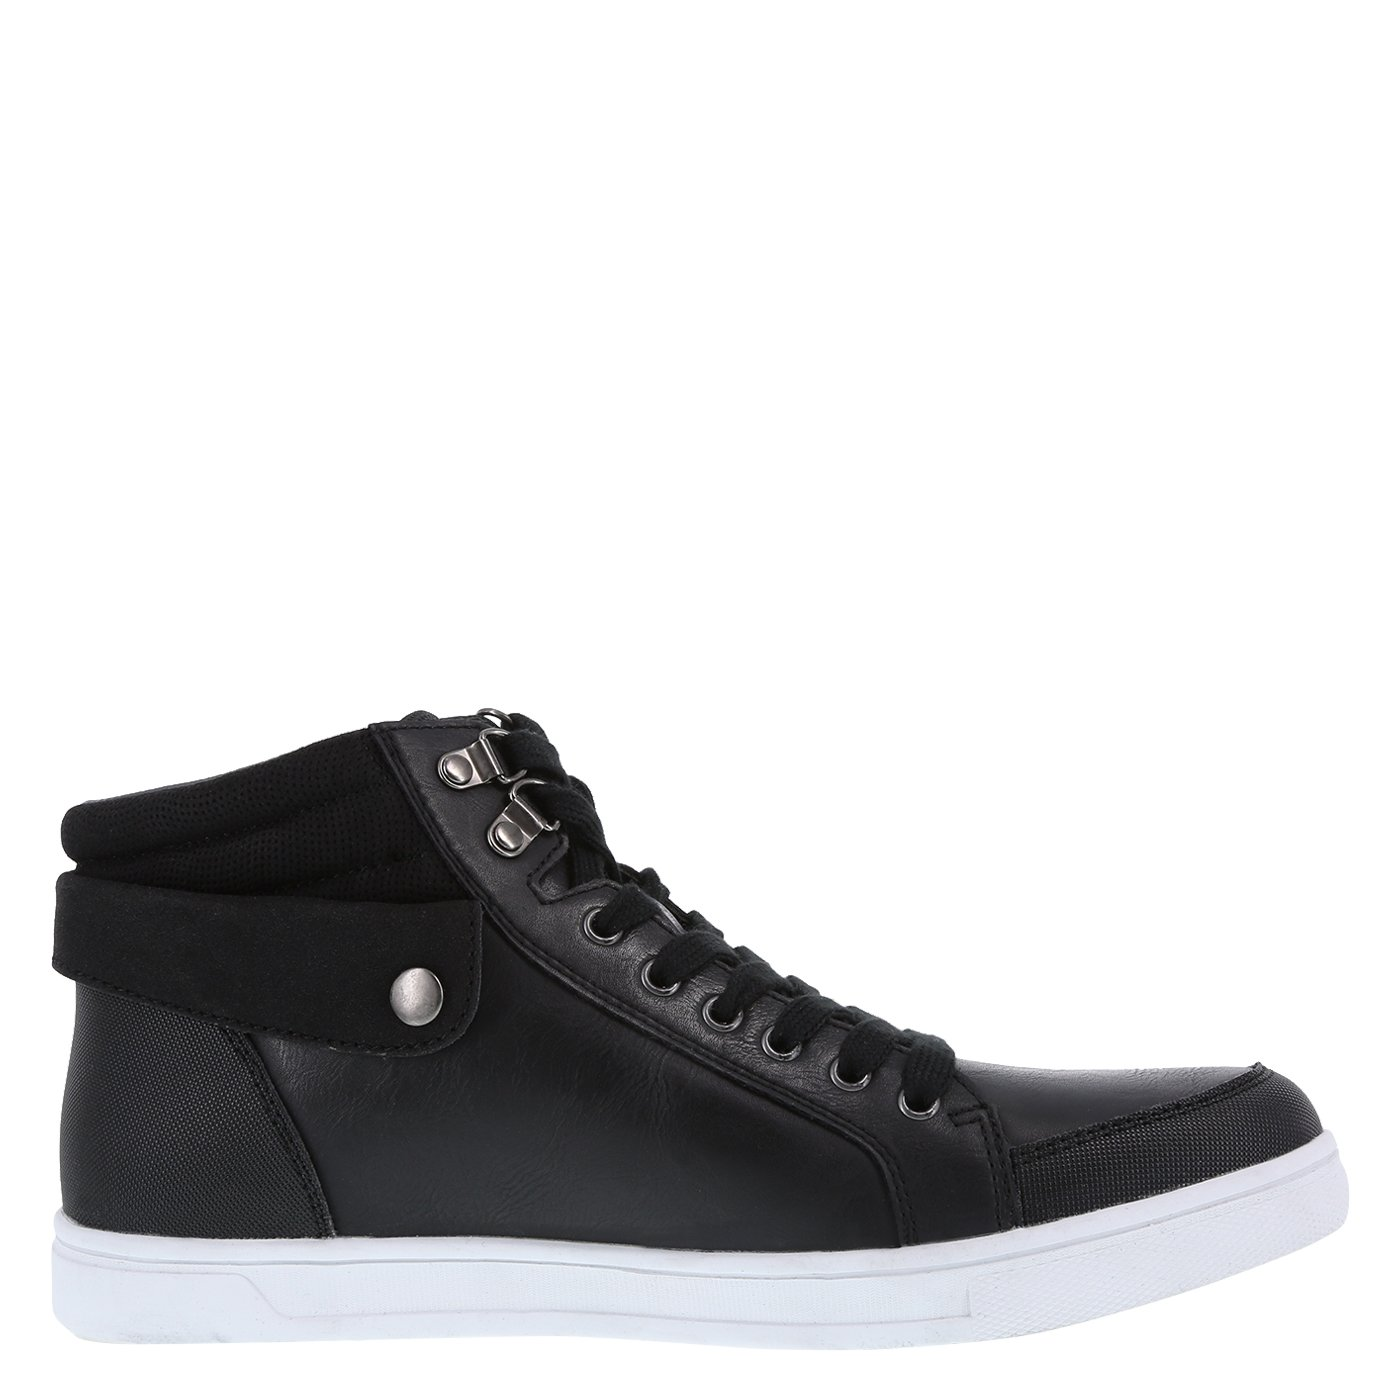 Airwalk Men's Black Men's Ian High-Top 11 Regular by Airwalk (Image #2)